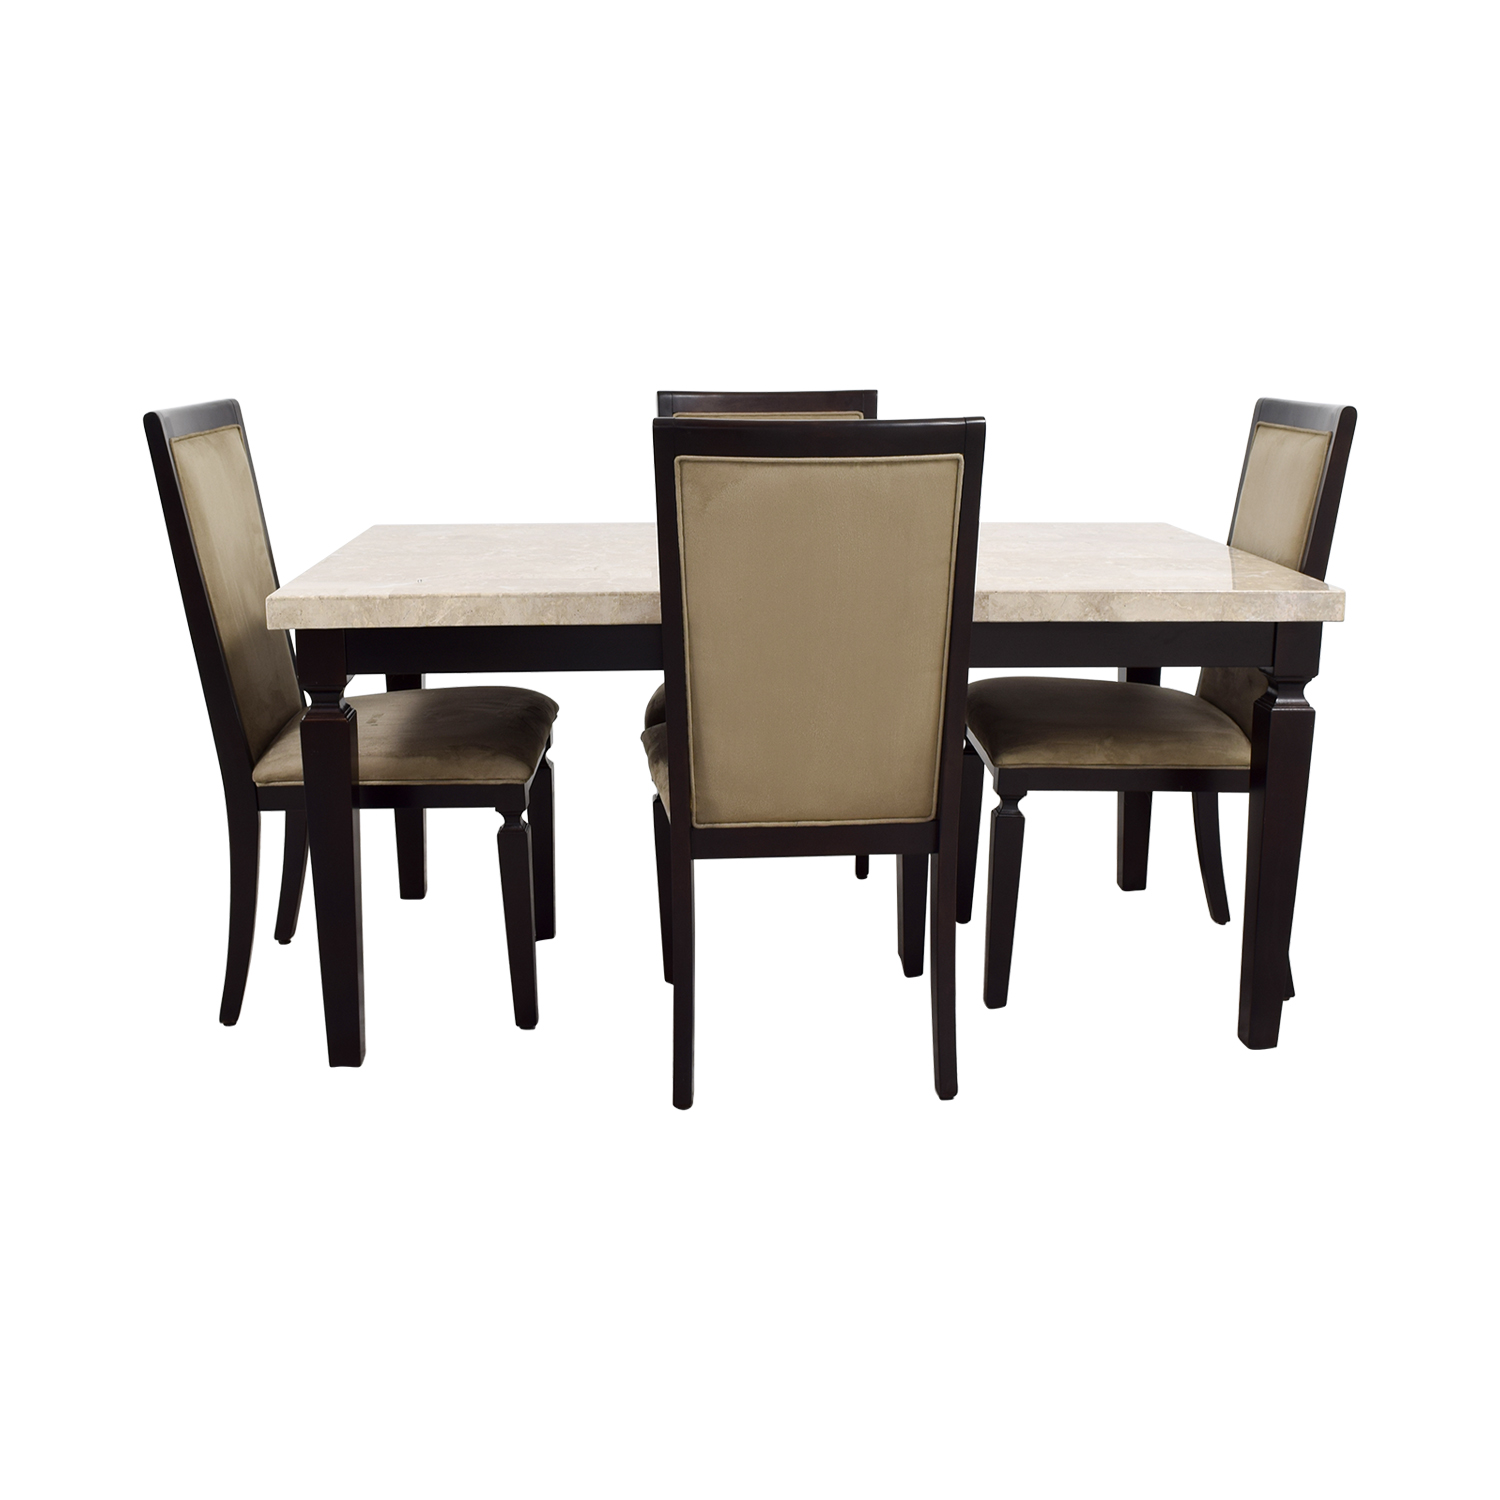 Buy Raymour U0026 Flanigan Raymour U0026 Flanigan Rogue Marble Dining Set ... Part 76